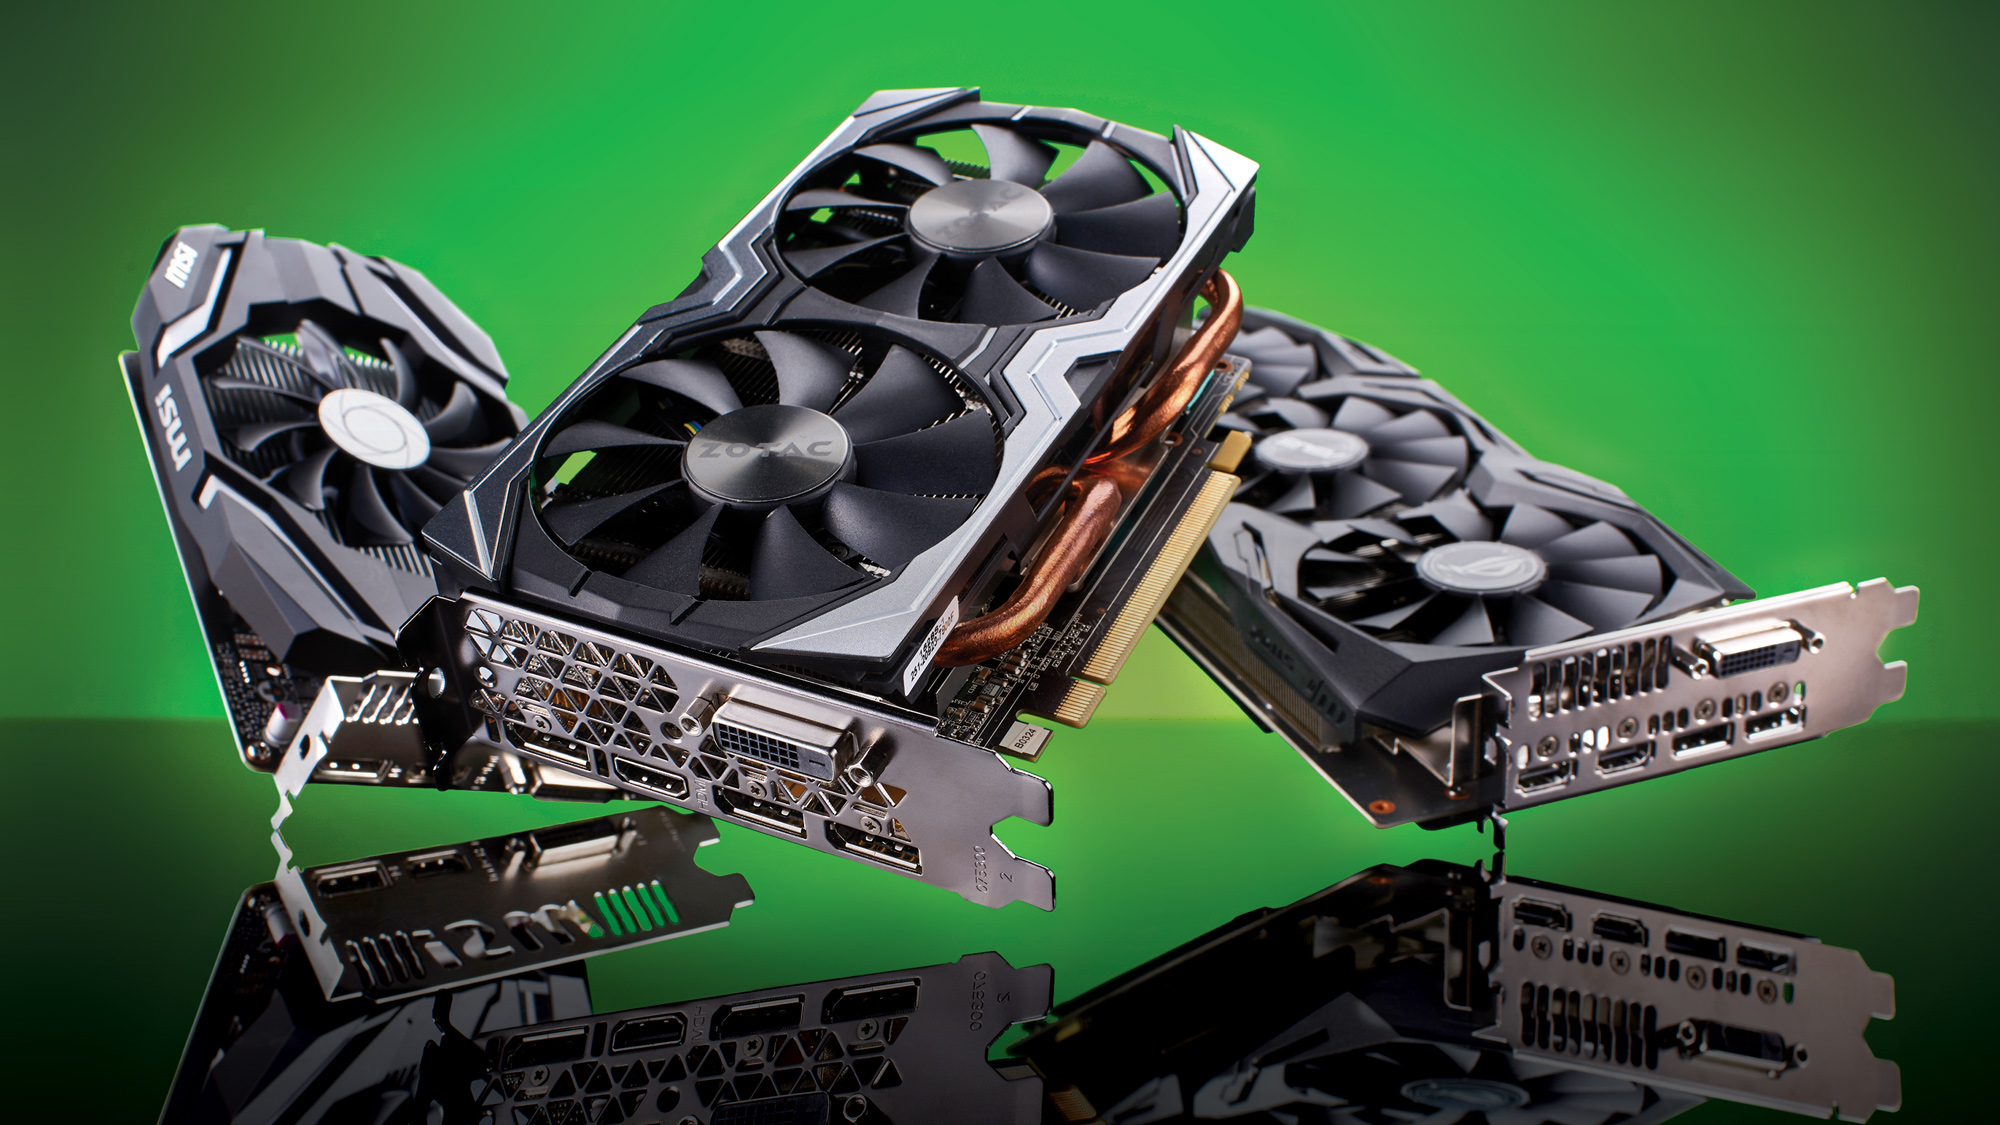 Which is The Best Graphics Card for Mining and Gaming? — Vipera - Tomorrow's Technology Today